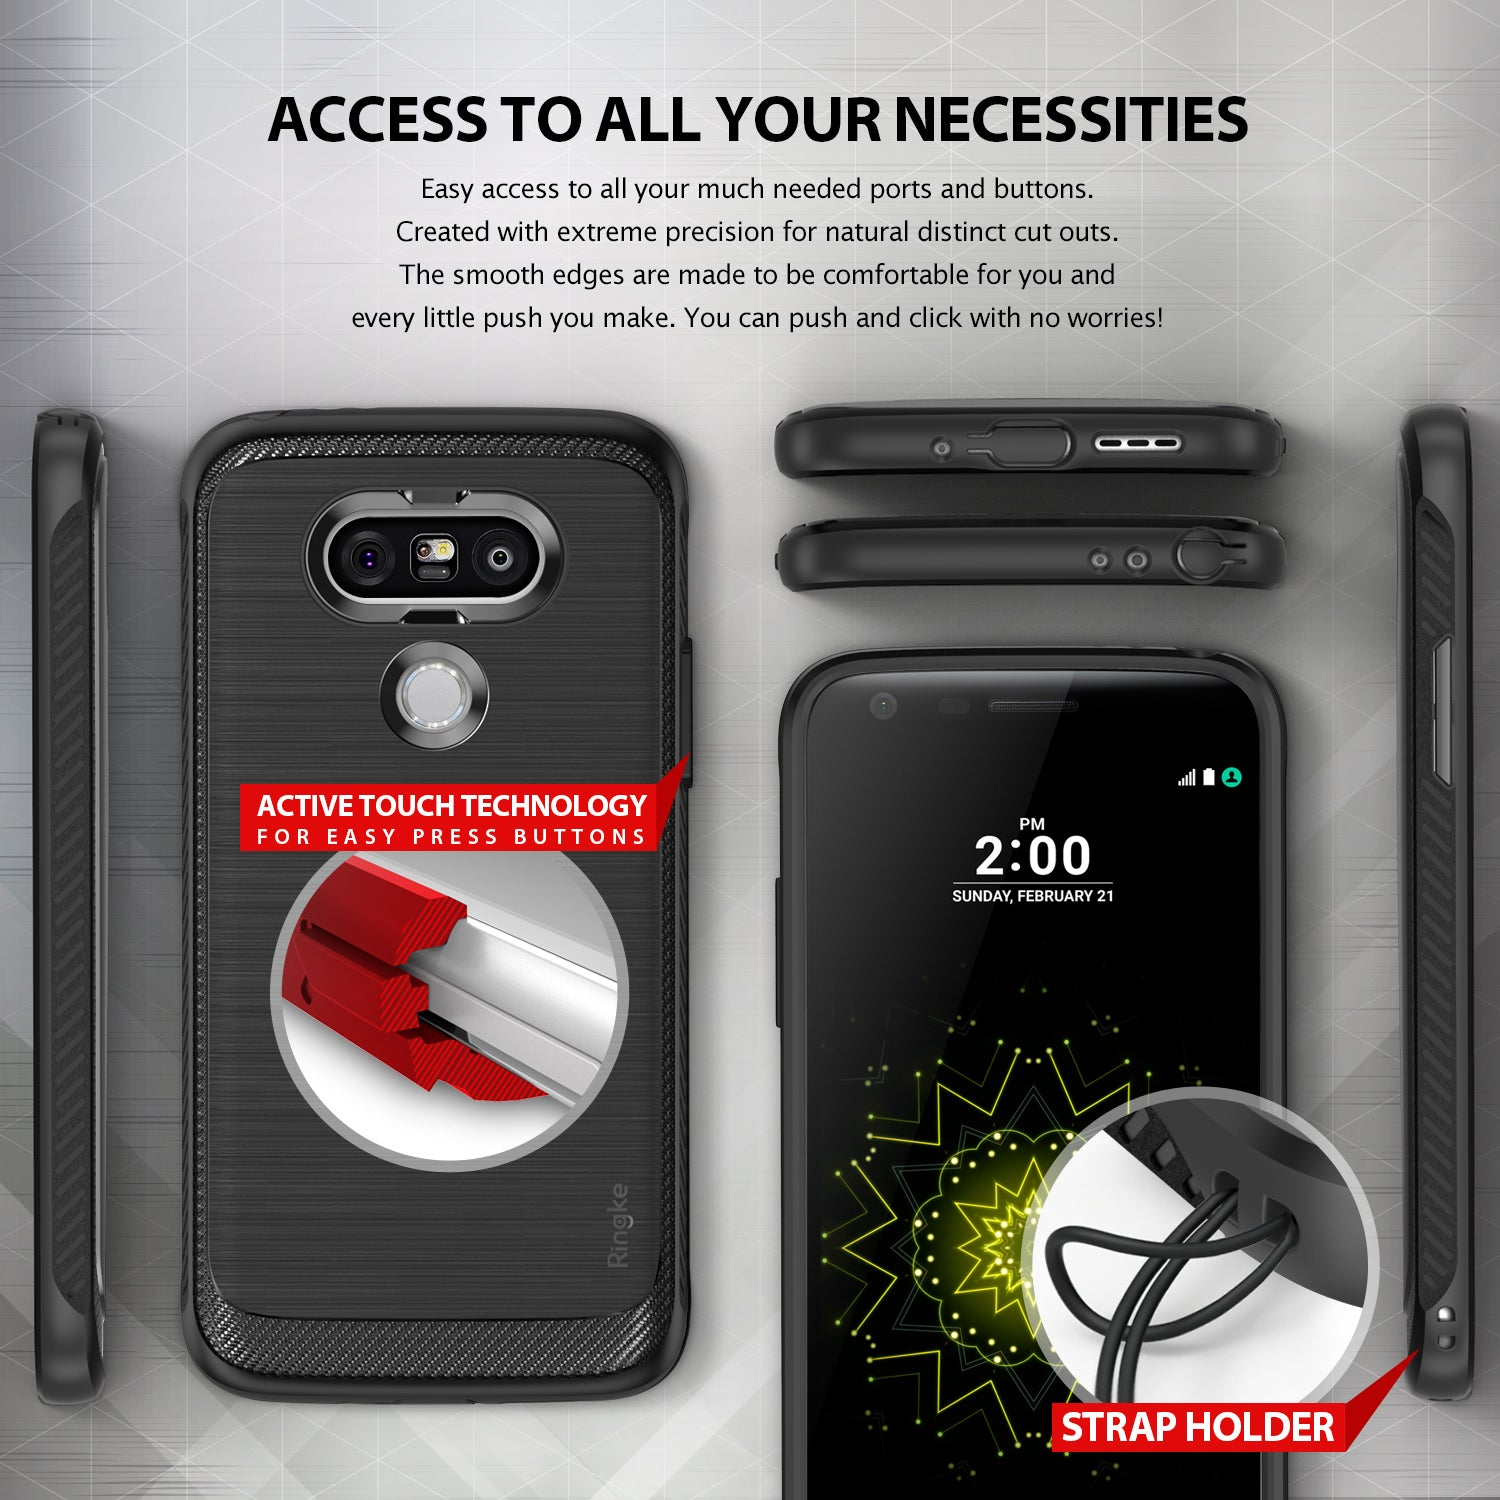 access to gall your necessities